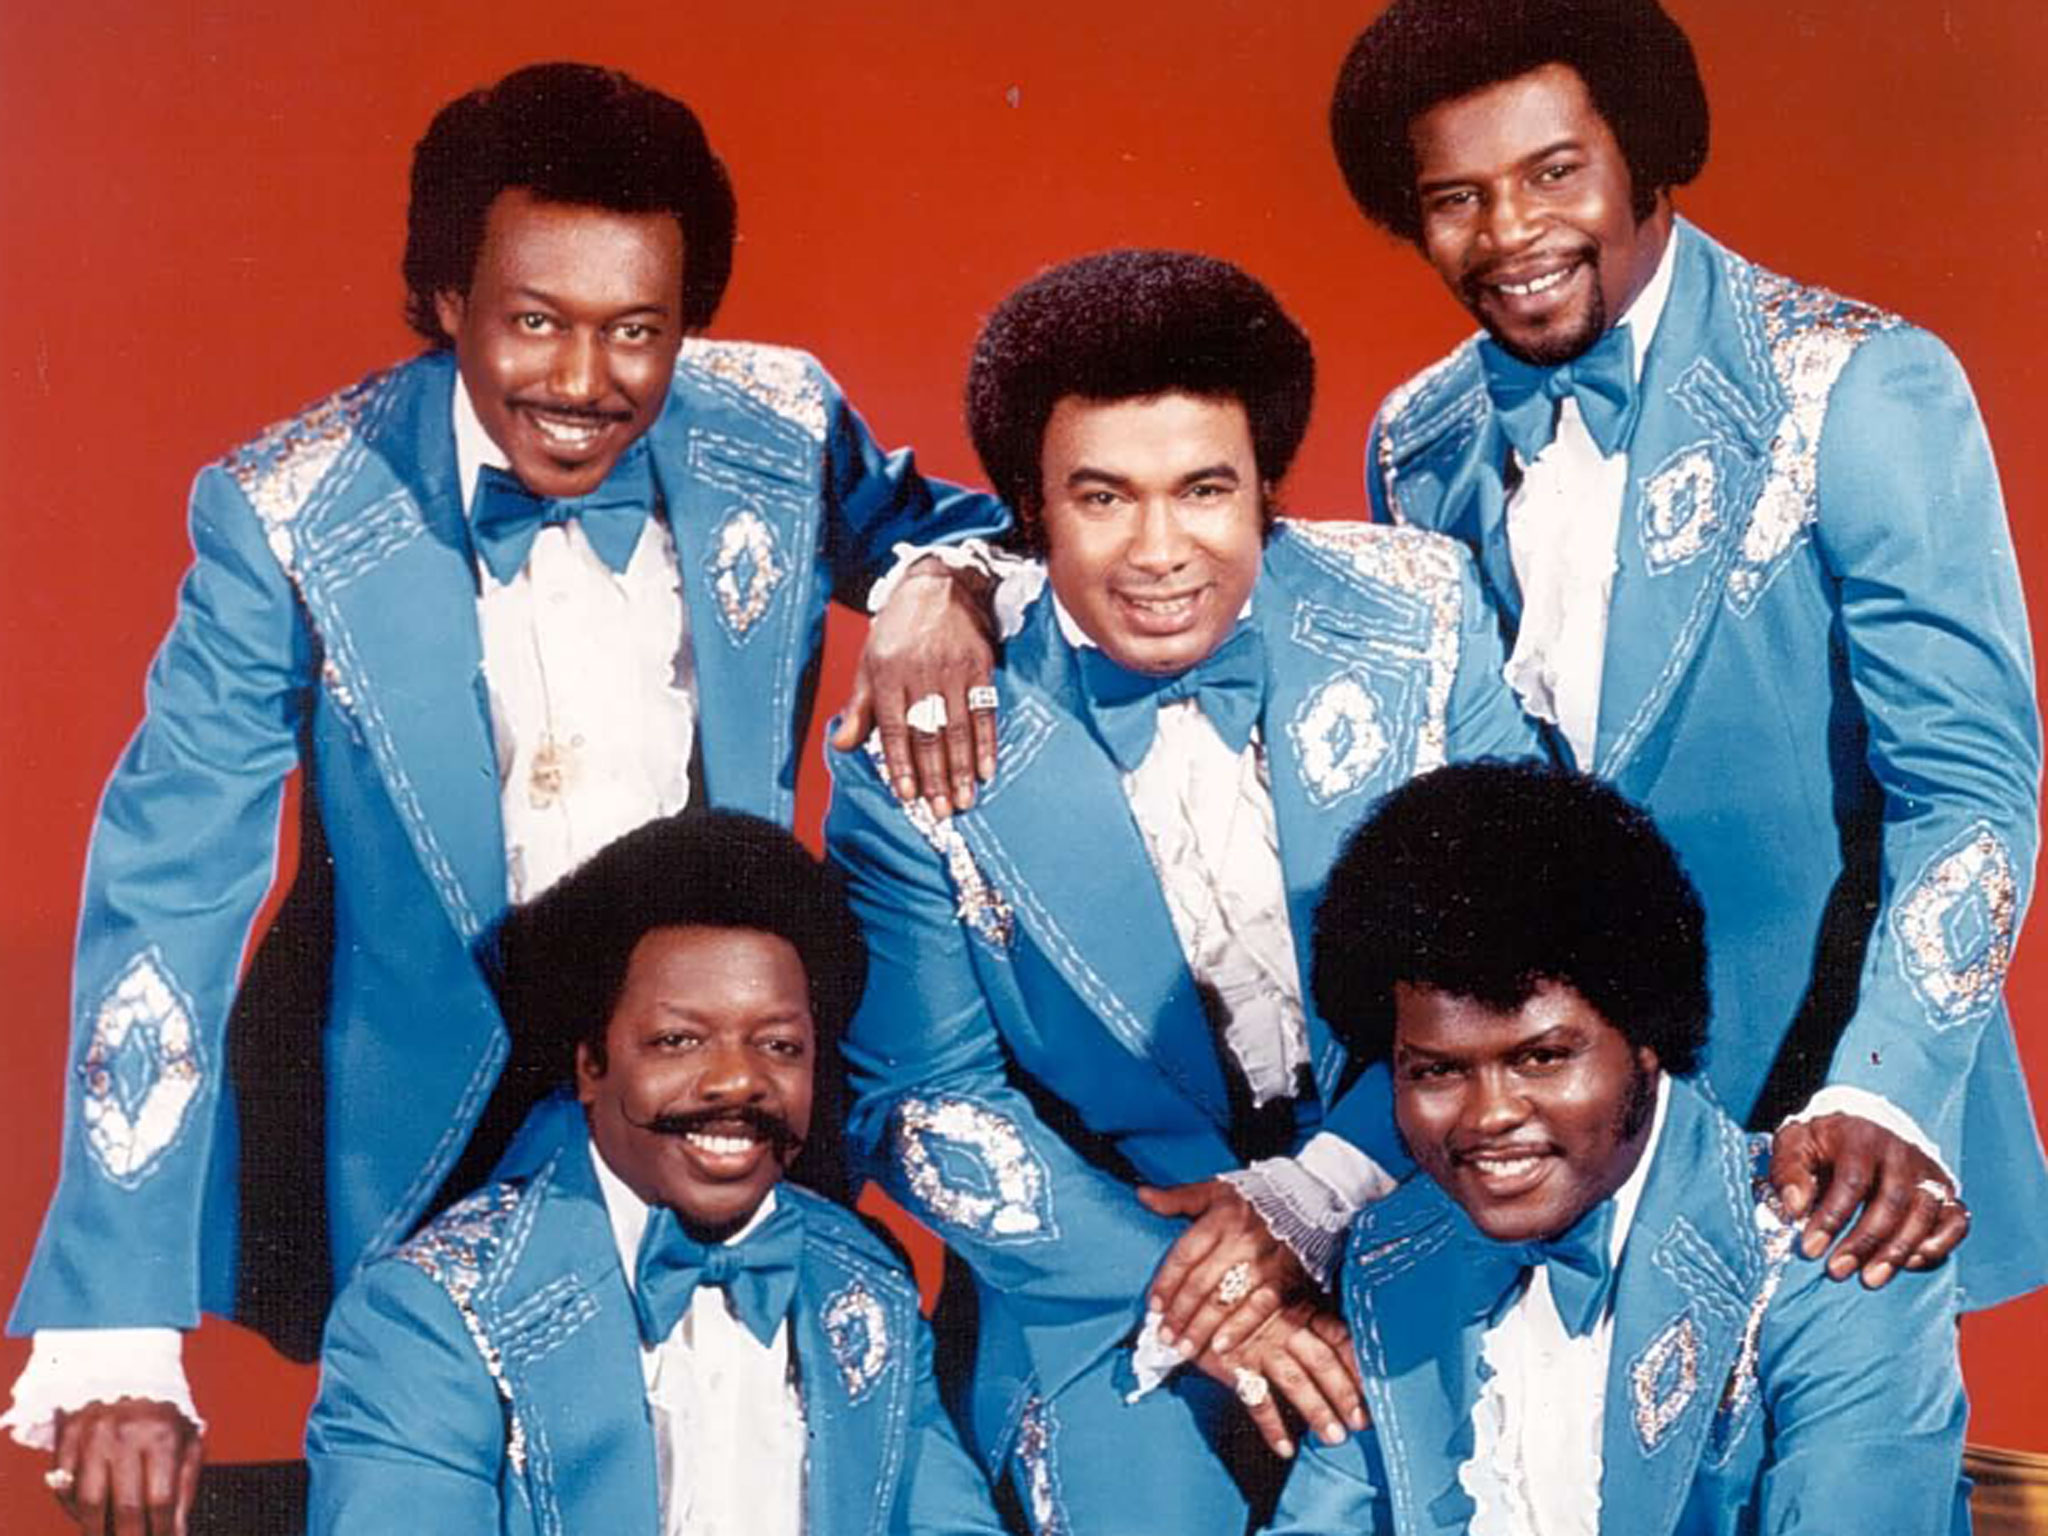 The Spinners, also known as he Detroit Spinners, not to be confused with the skiffle and folk group from Liverpool